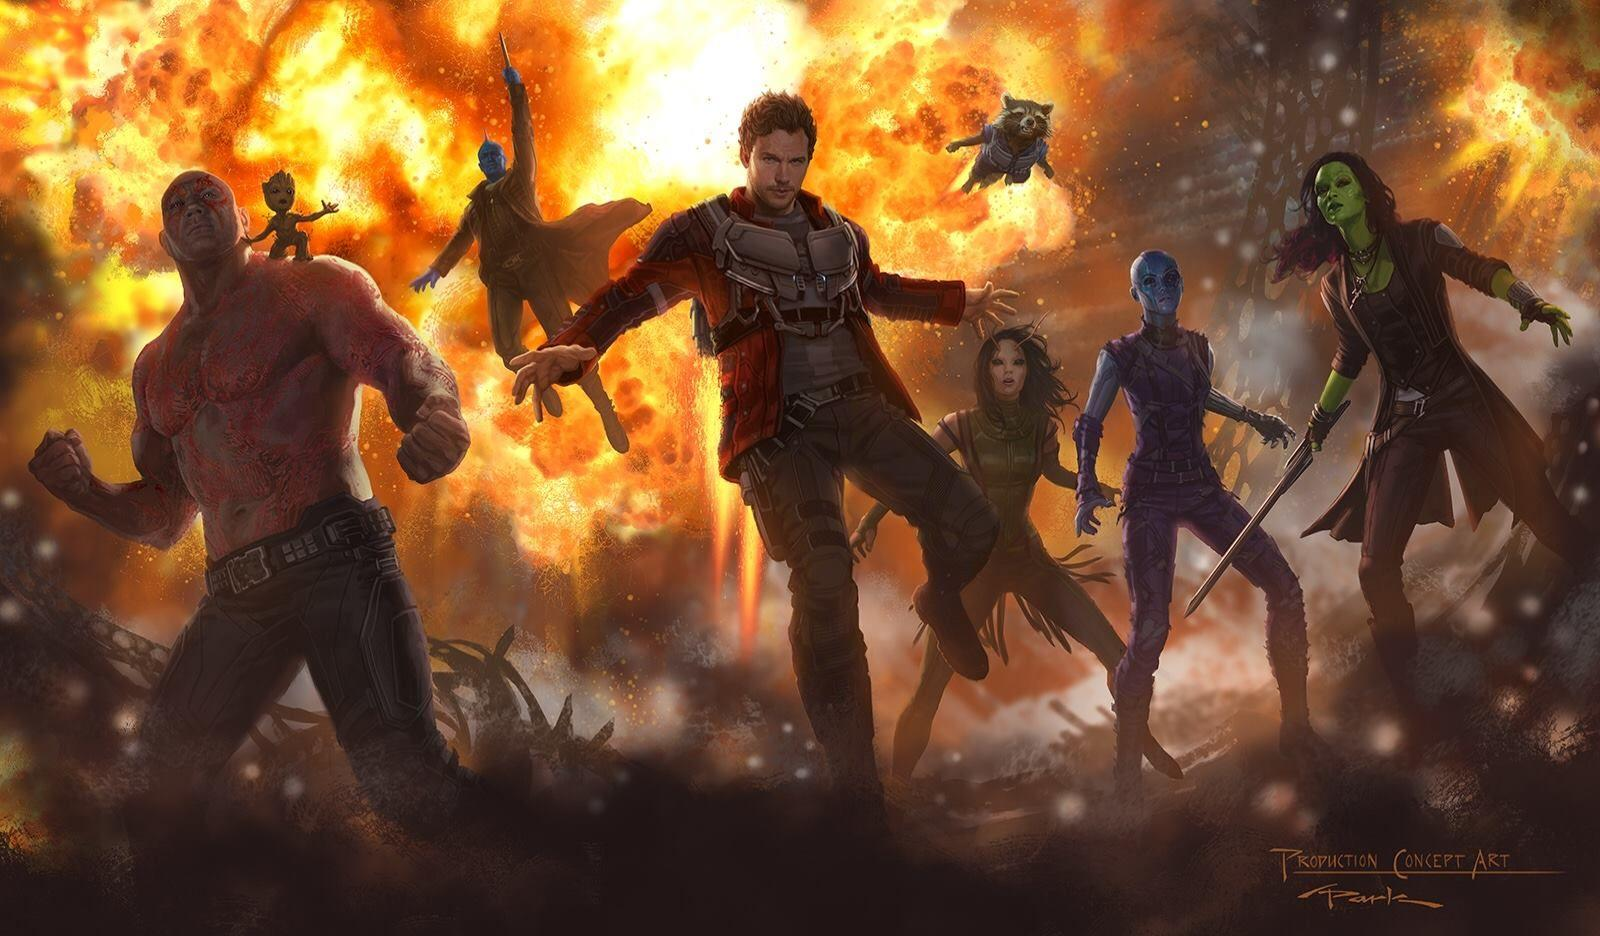 Ooga-chaka! Escucha el 'Awesome Mix Vol. 0' de Guardians of the Galaxy